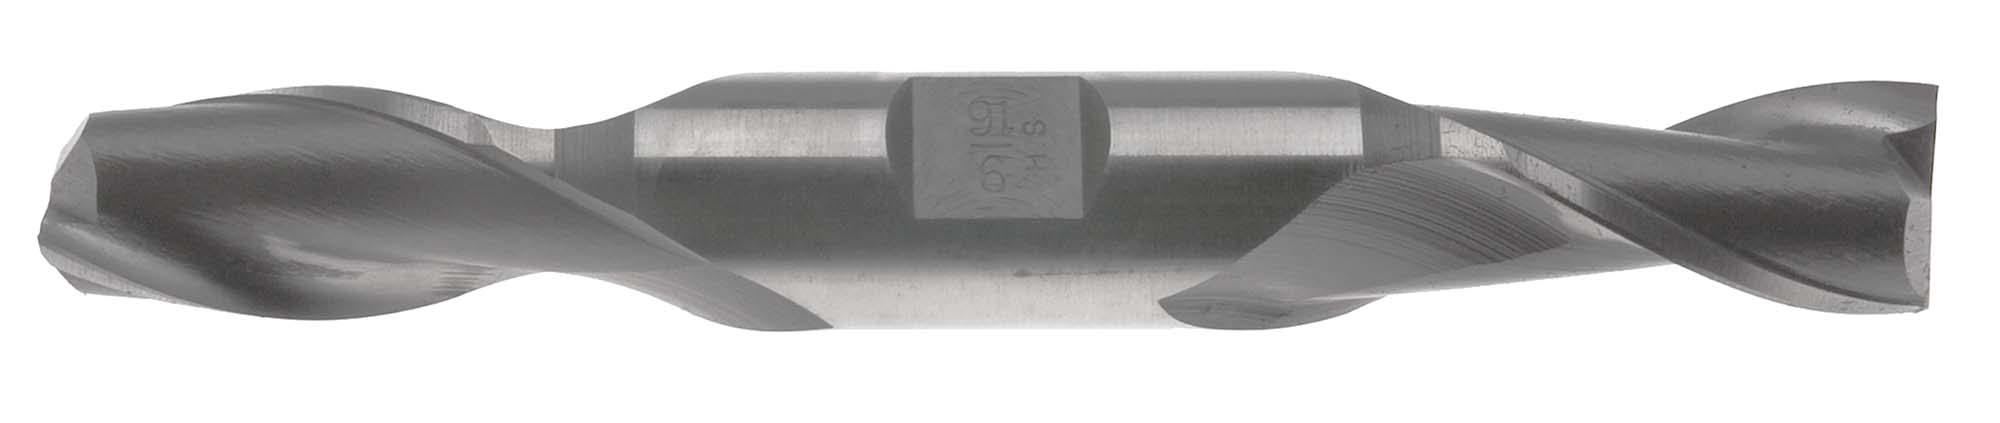 "EM-C28  7/8"" Double End 2 Flute End Mill, High Speed Steel,  7/8"" Shank"